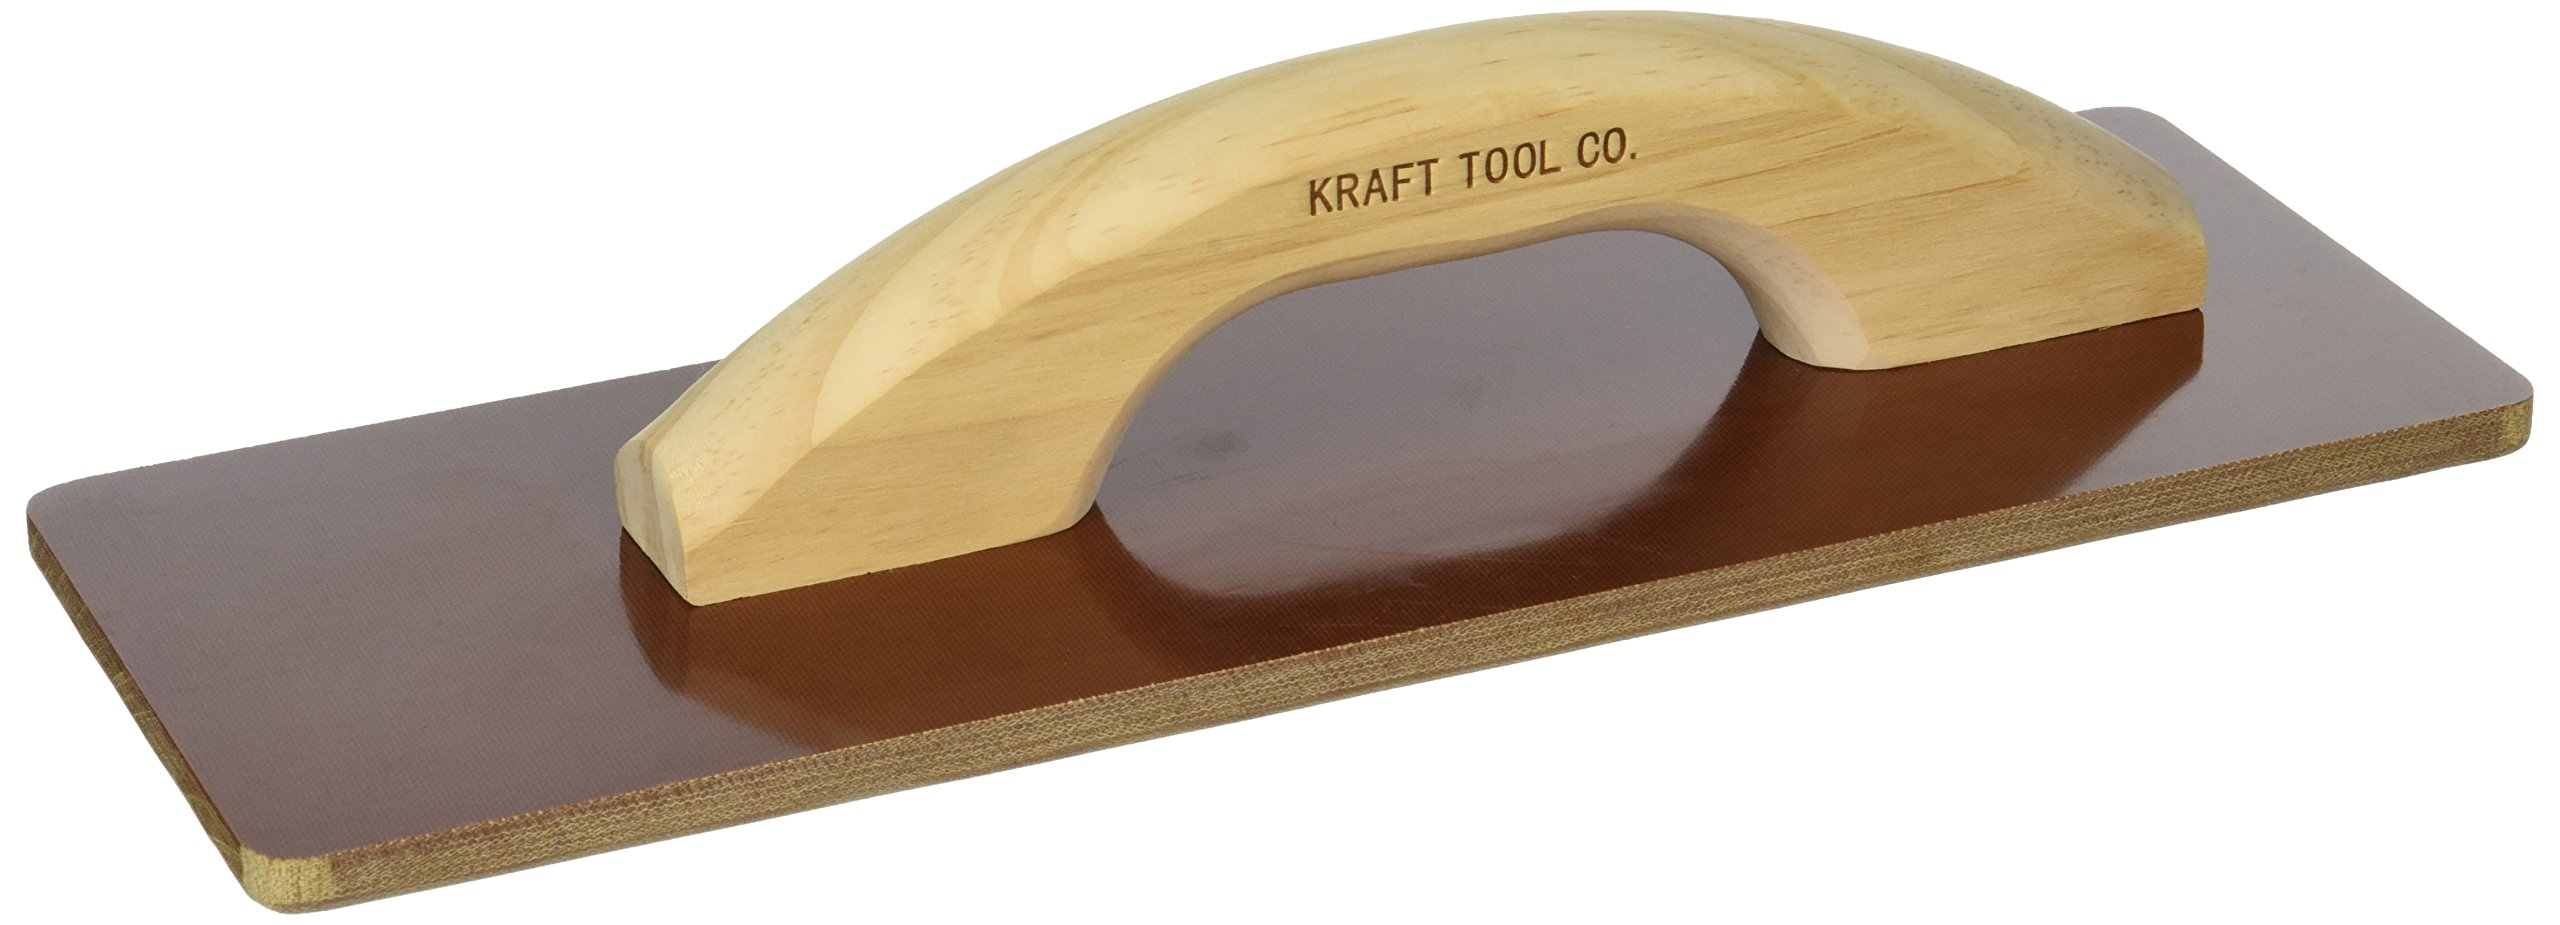 Kraft Tool CF530 Square End Laminated Canvas Float with Wood Handle, 14 x 5-Inch